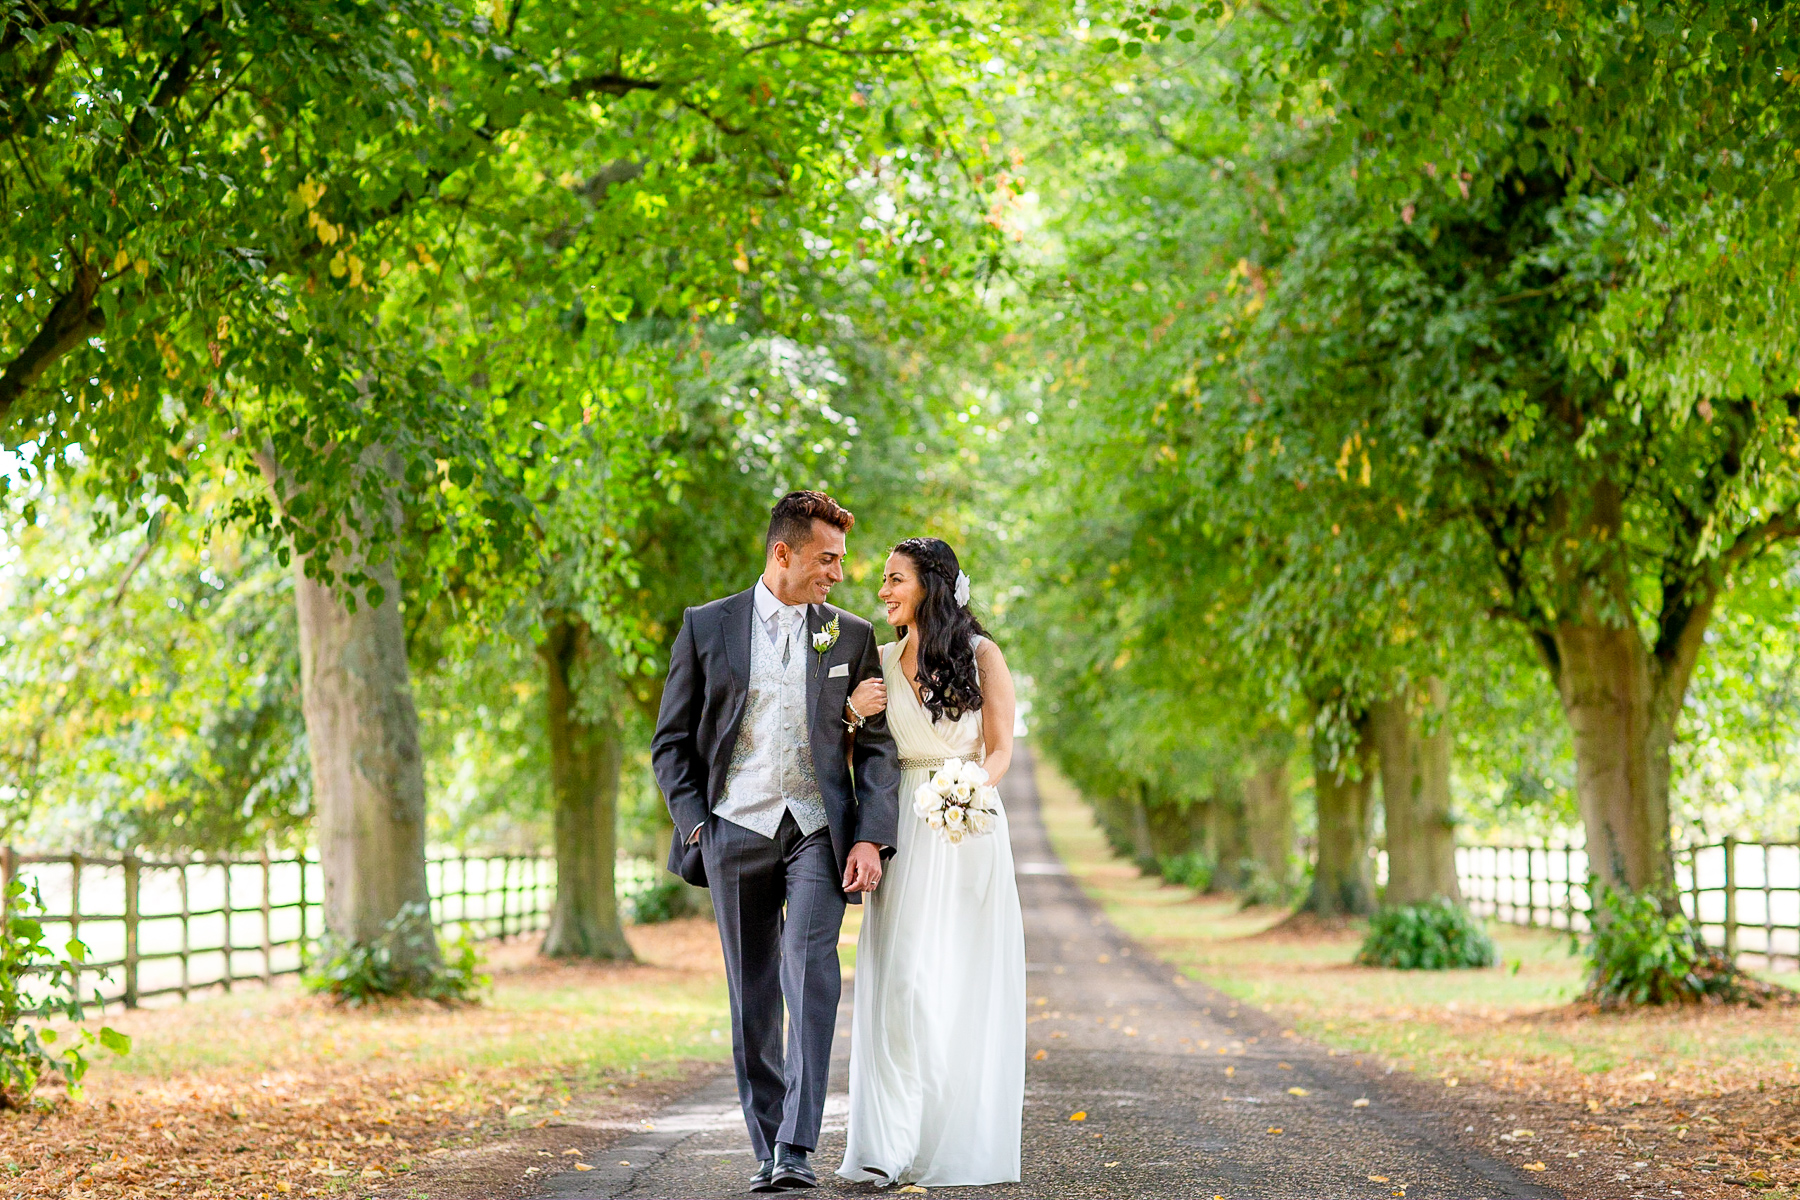 Notley Abbey wedding tree lined driveway